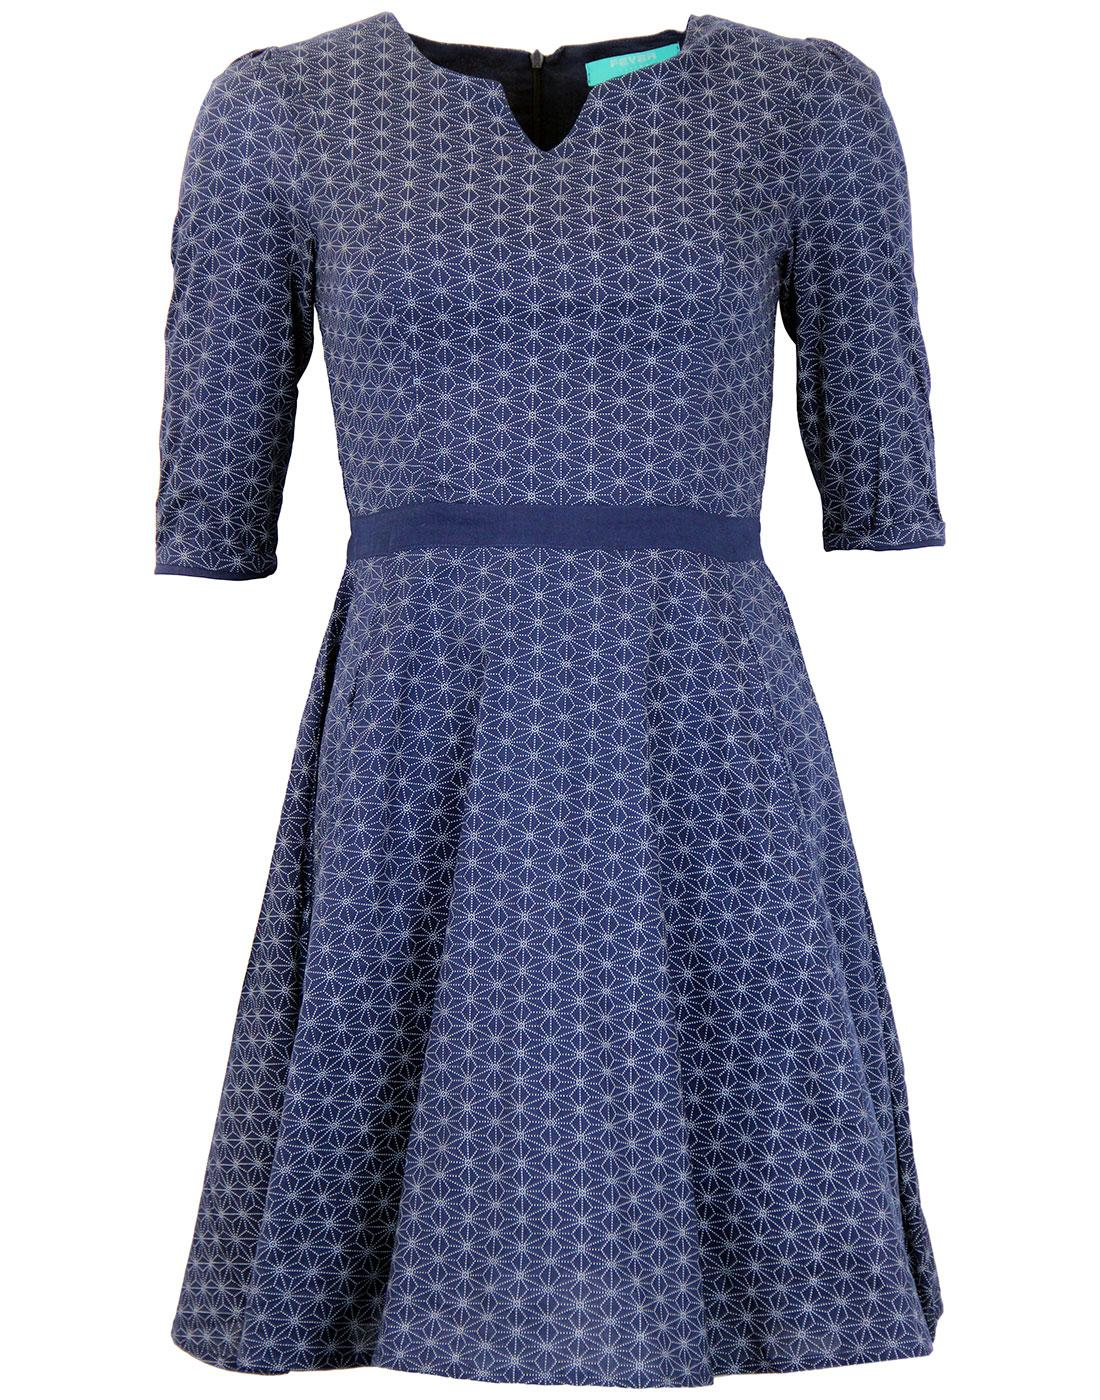 FEVER Retro 60s Geometric Print Mod Mosaic Dress